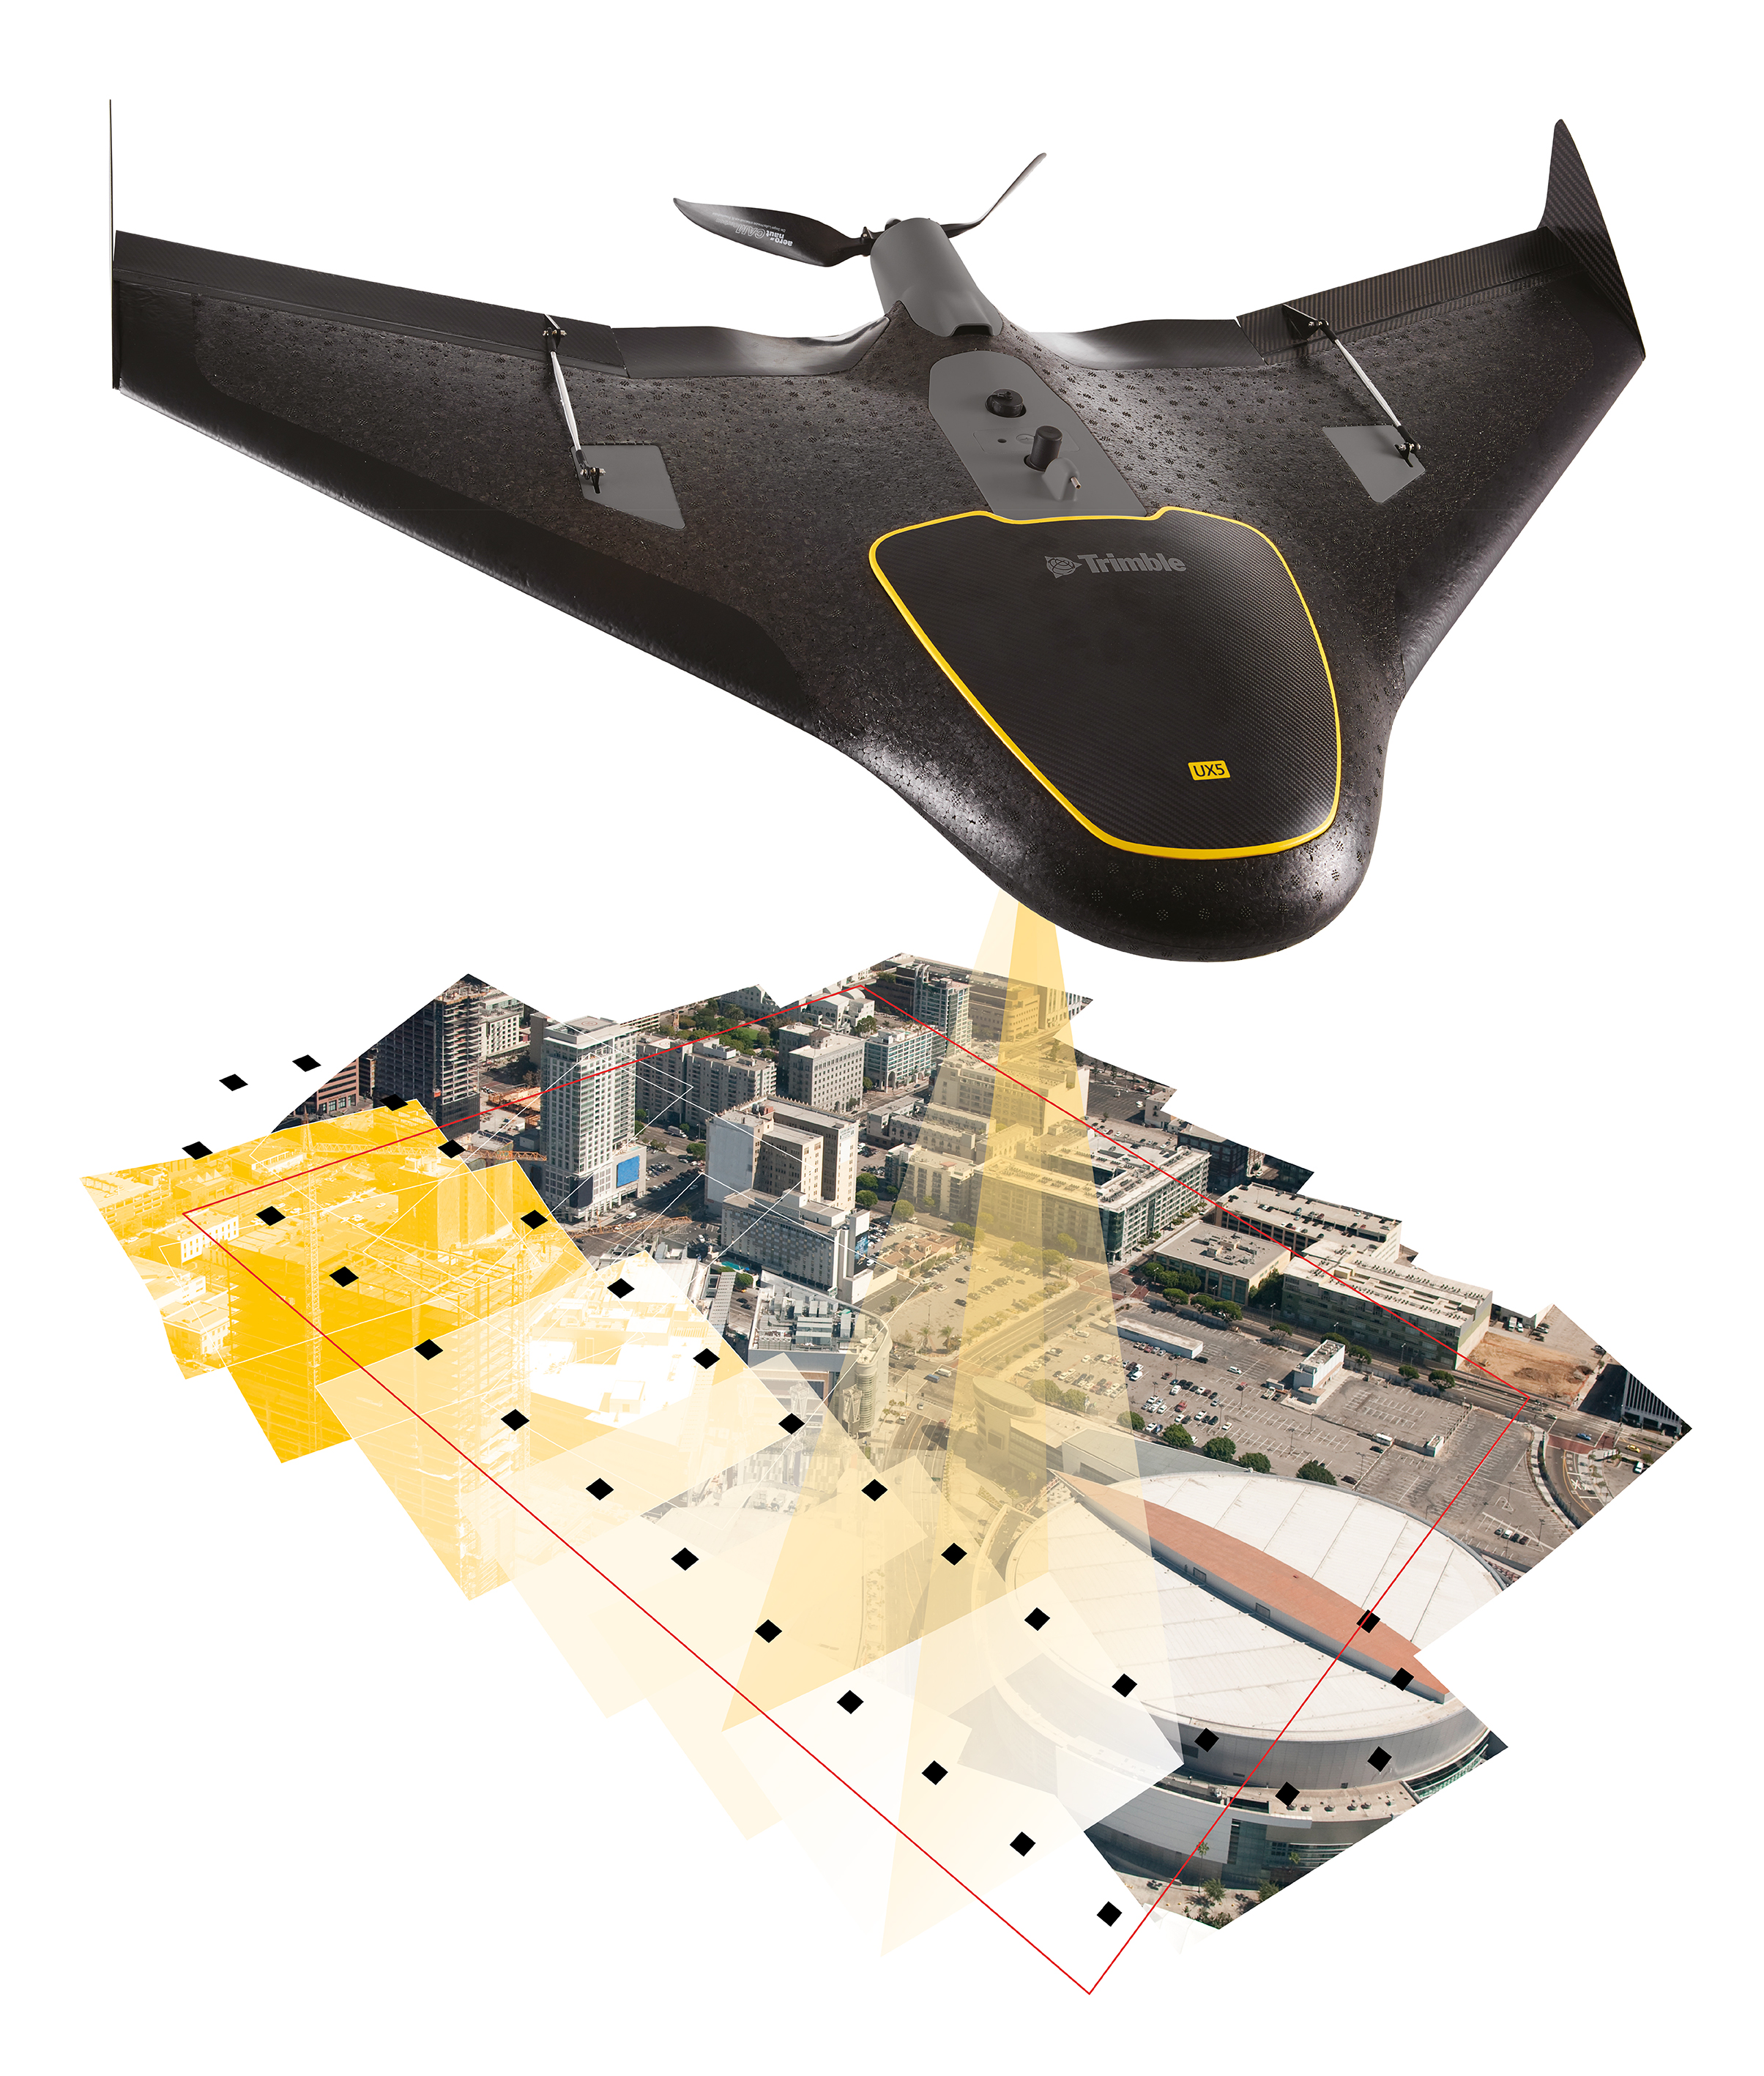 UX5 Unmanned Aircraft System